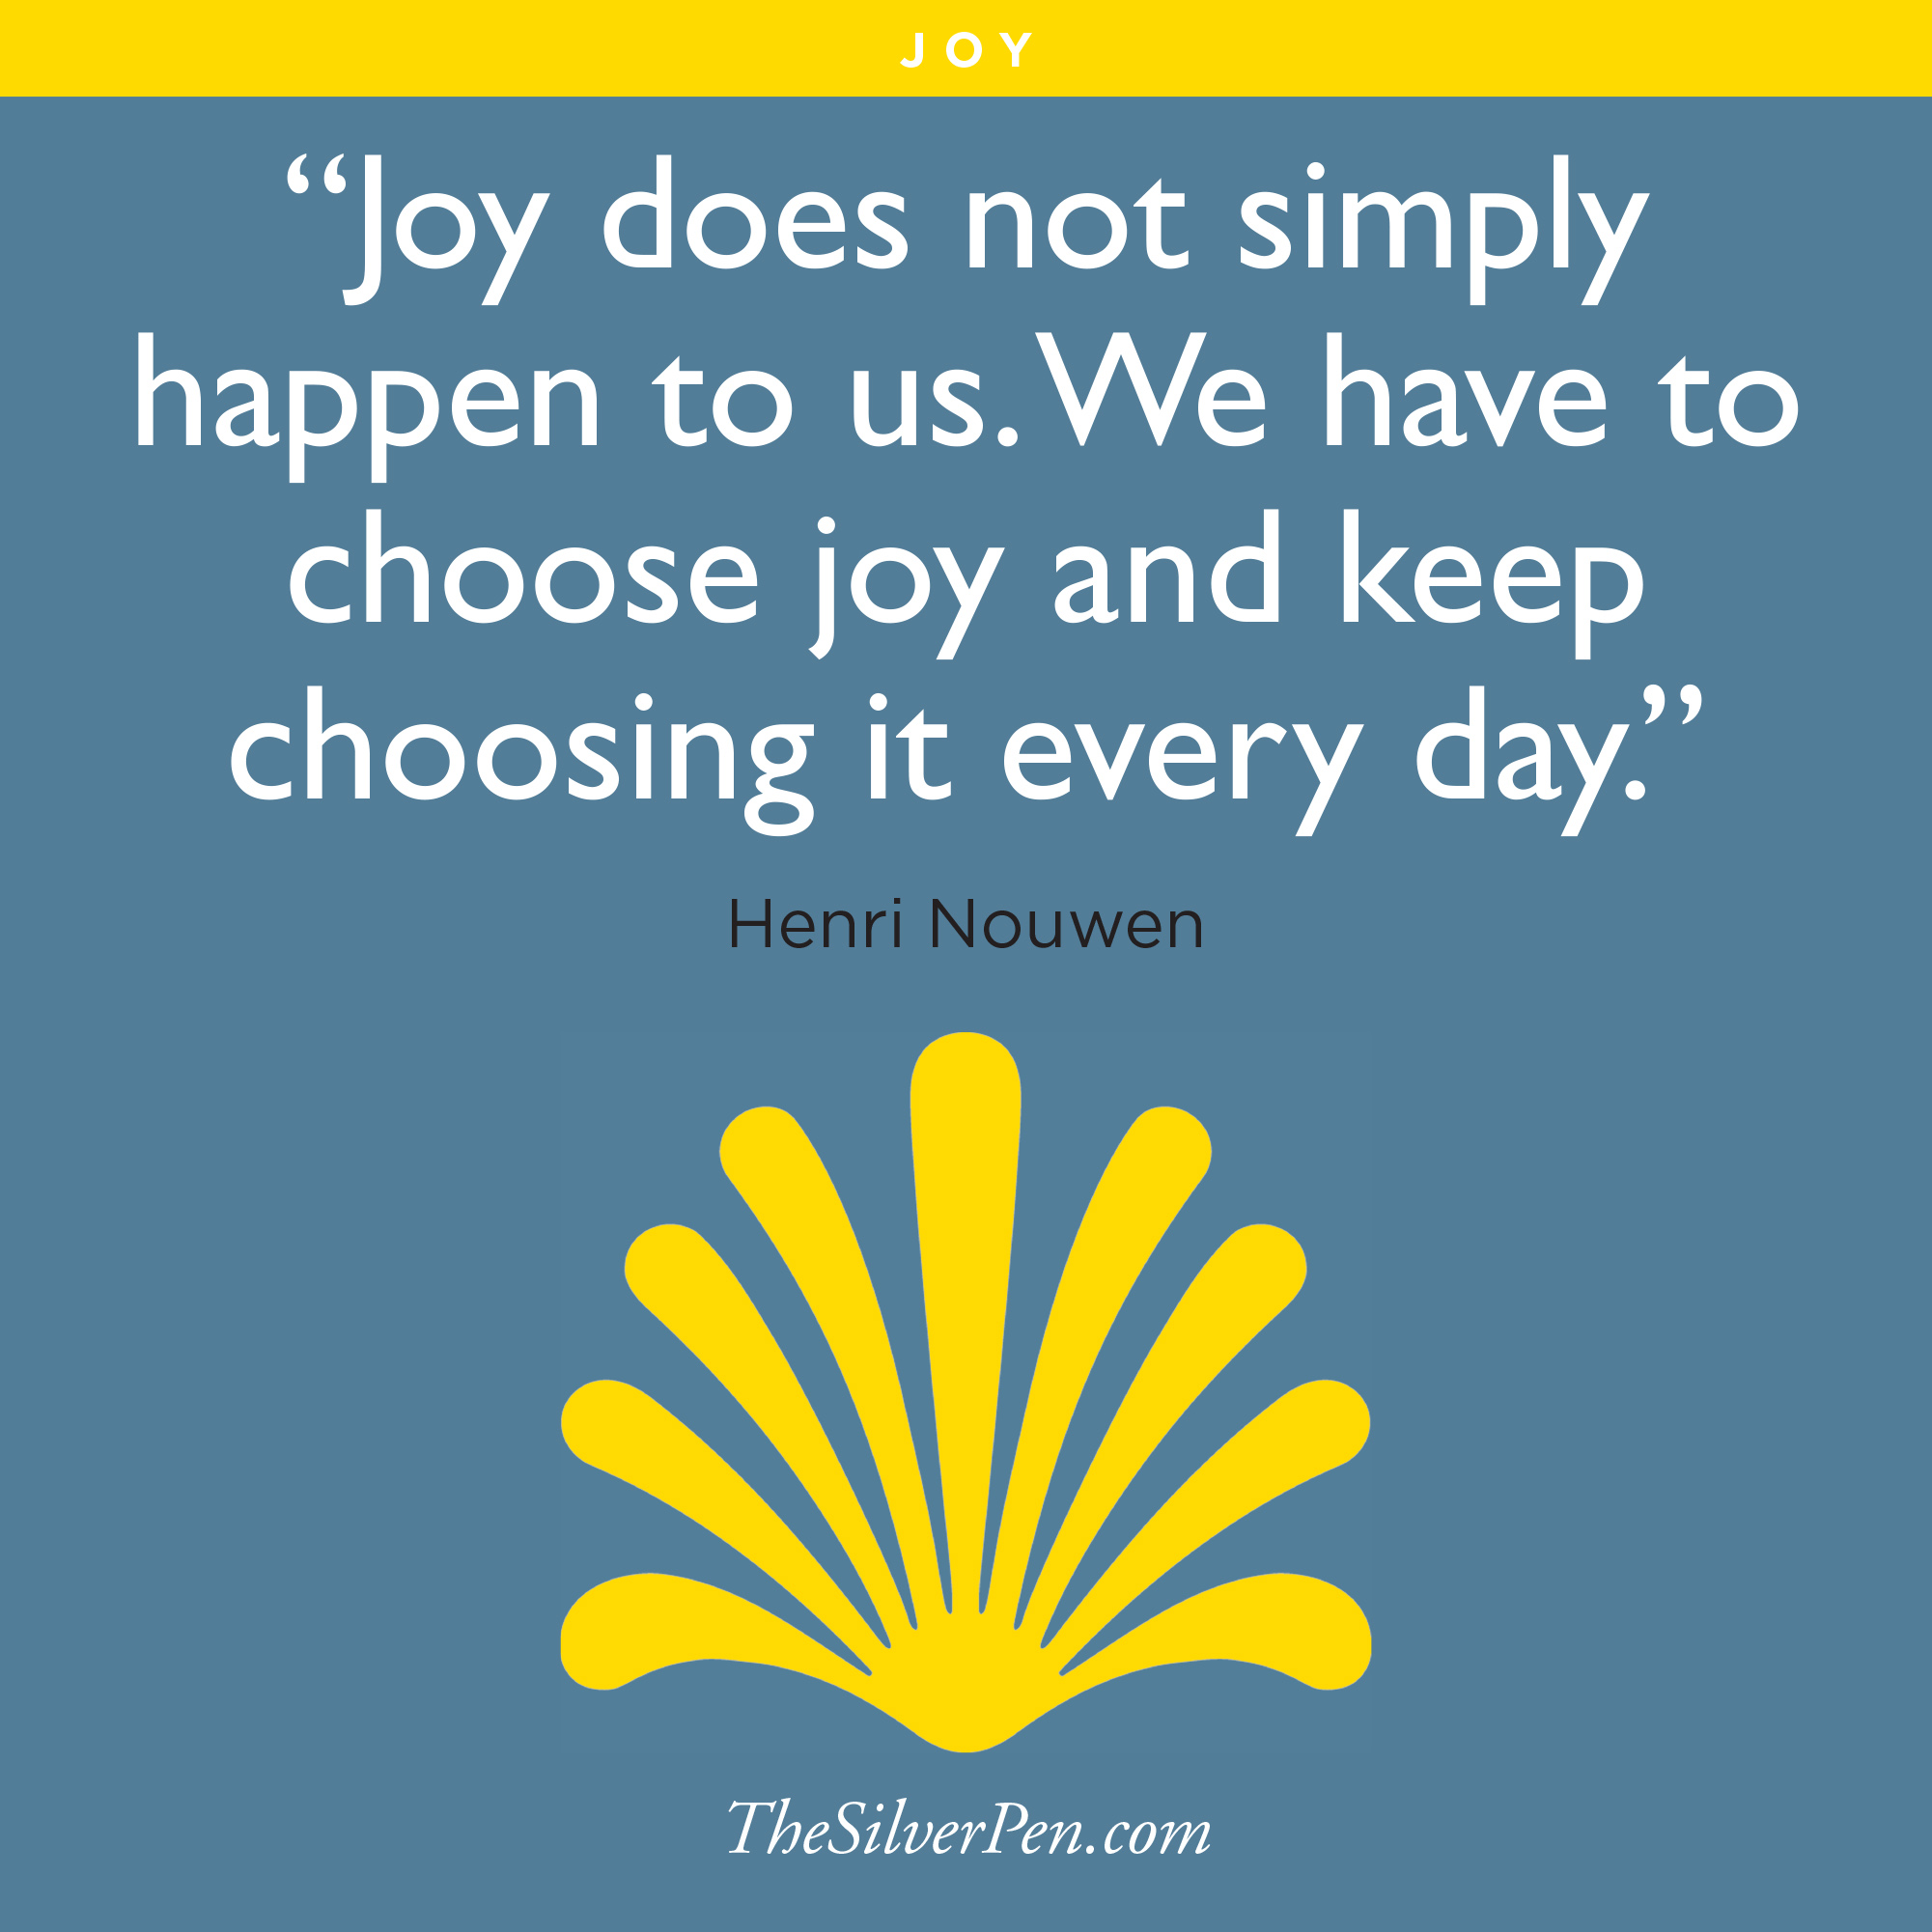 Quotes About Joy In Life: Quotes About Joyful Living. QuotesGram